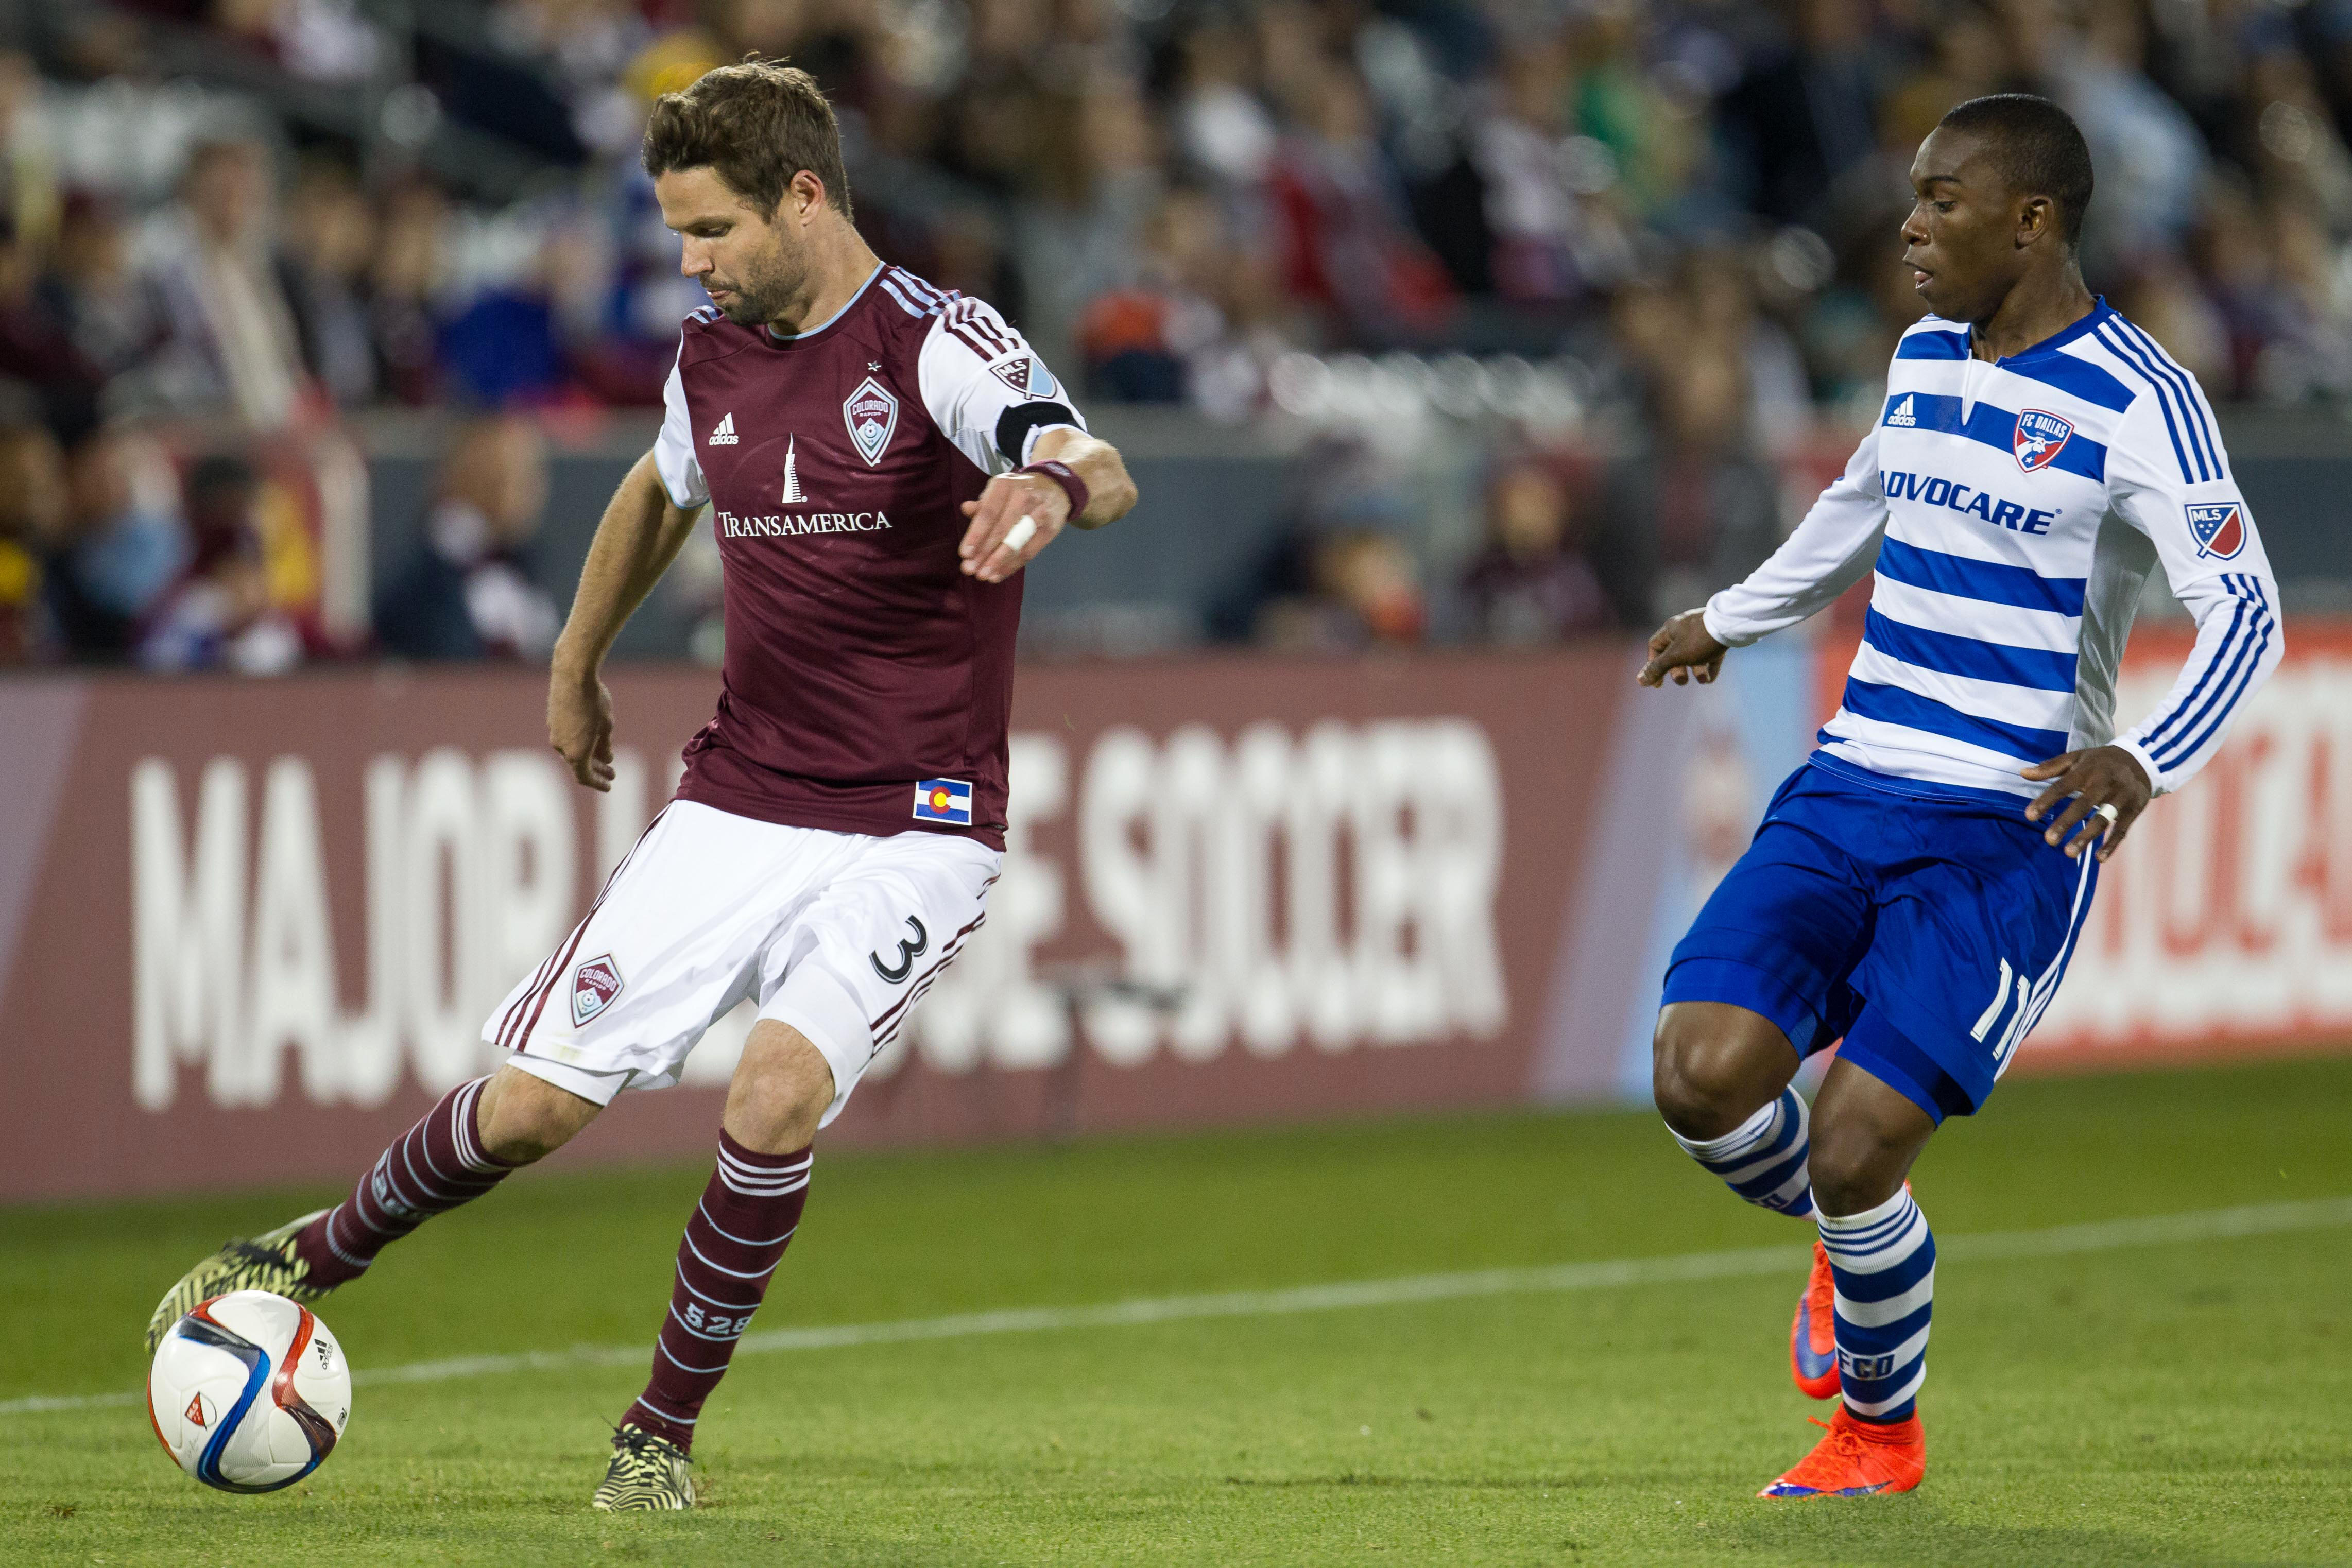 Drew Moor beating Fabian Castillo to the ball in the second half of the Rapids match vs FC Dallas